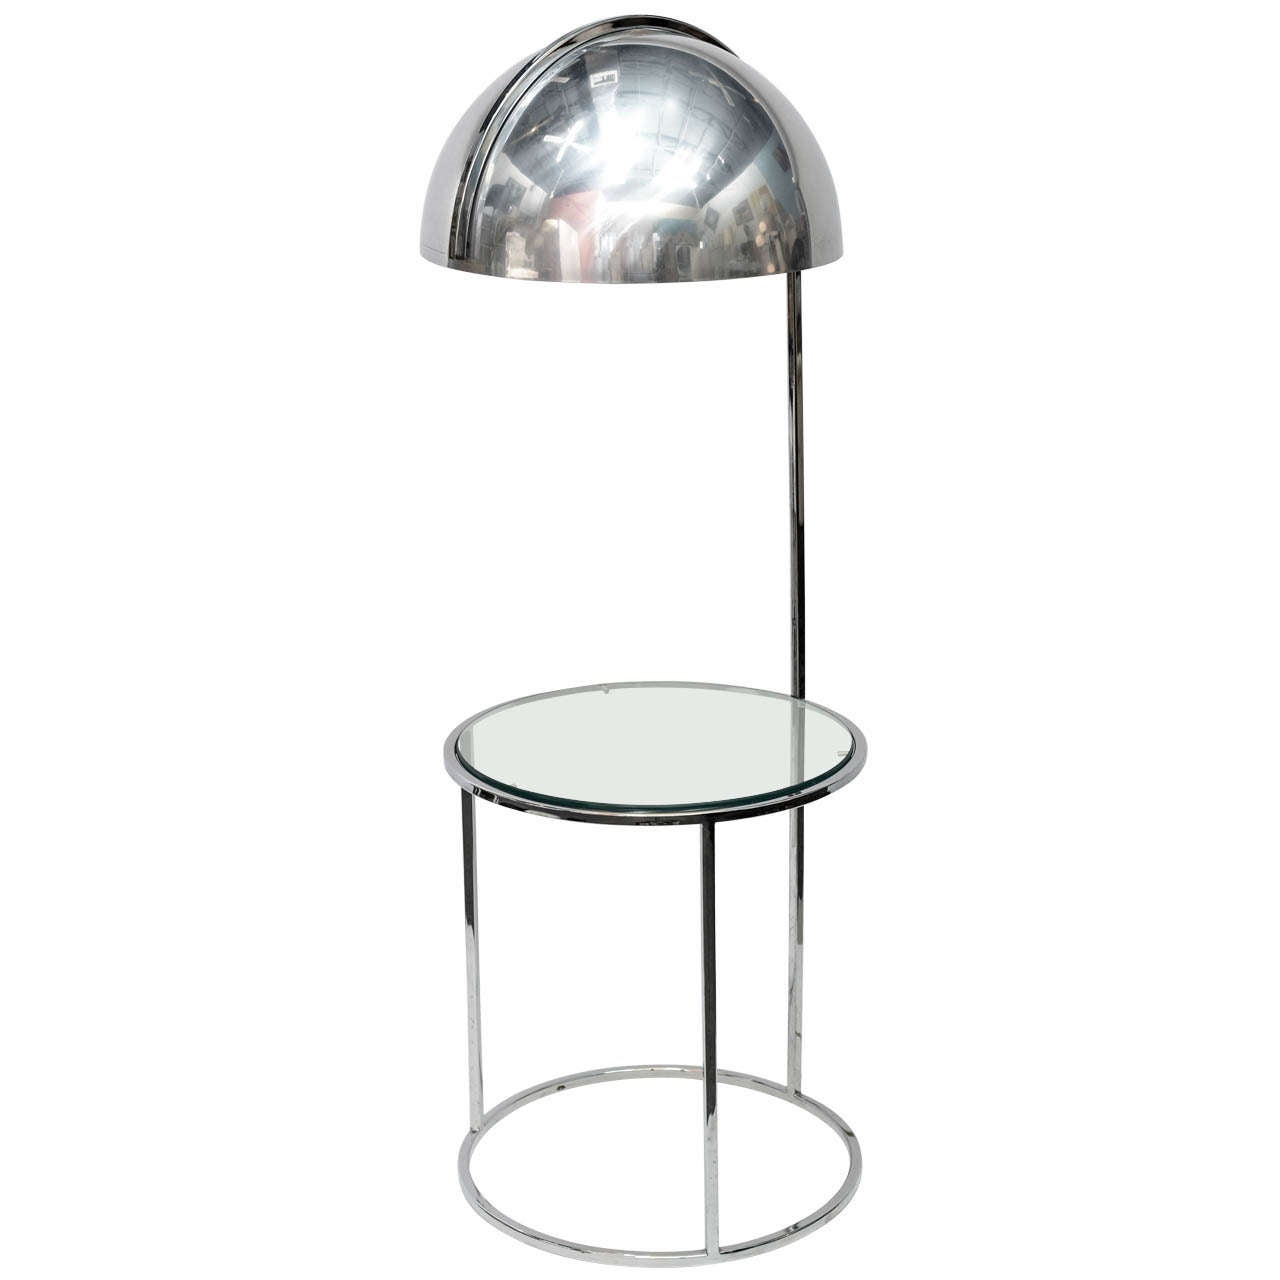 chrome dome floor lamp with end table at 1stdibs. Black Bedroom Furniture Sets. Home Design Ideas